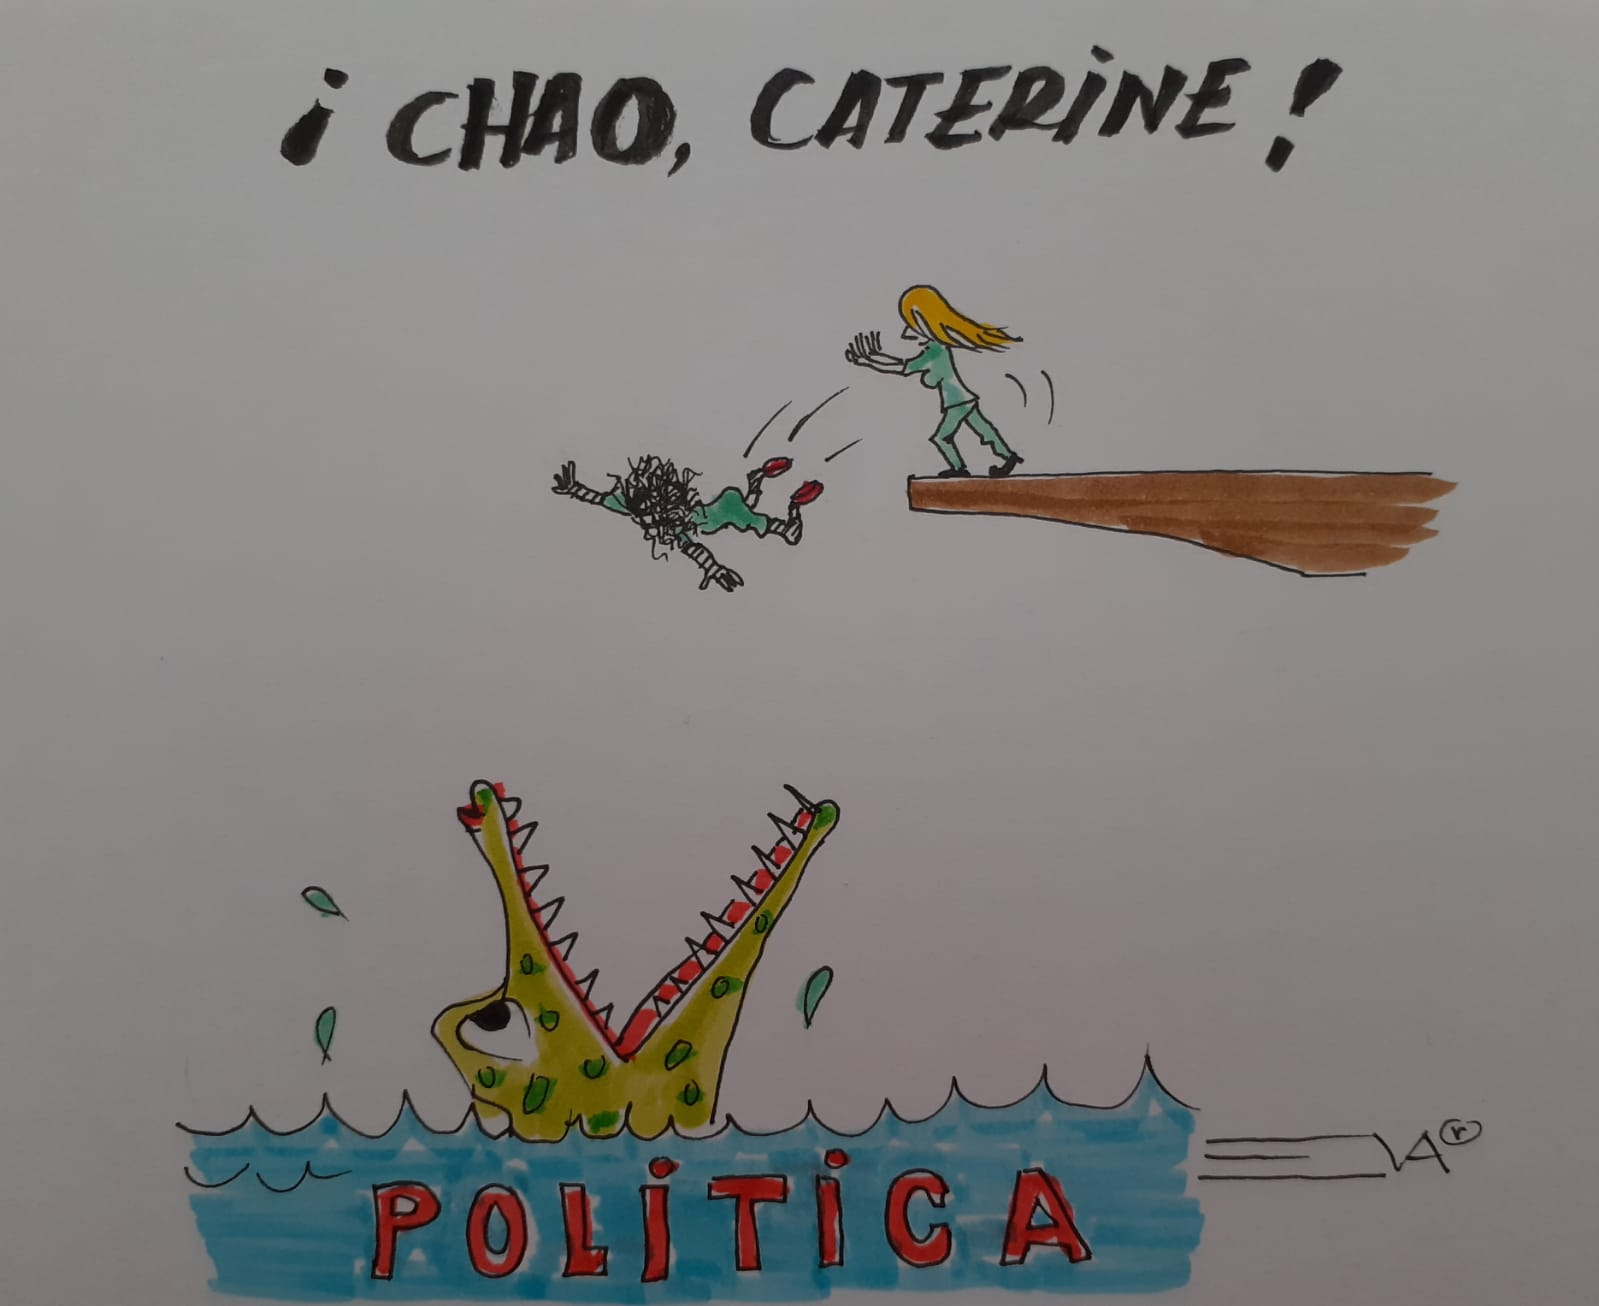 ¡ CHAO, CATERINE !